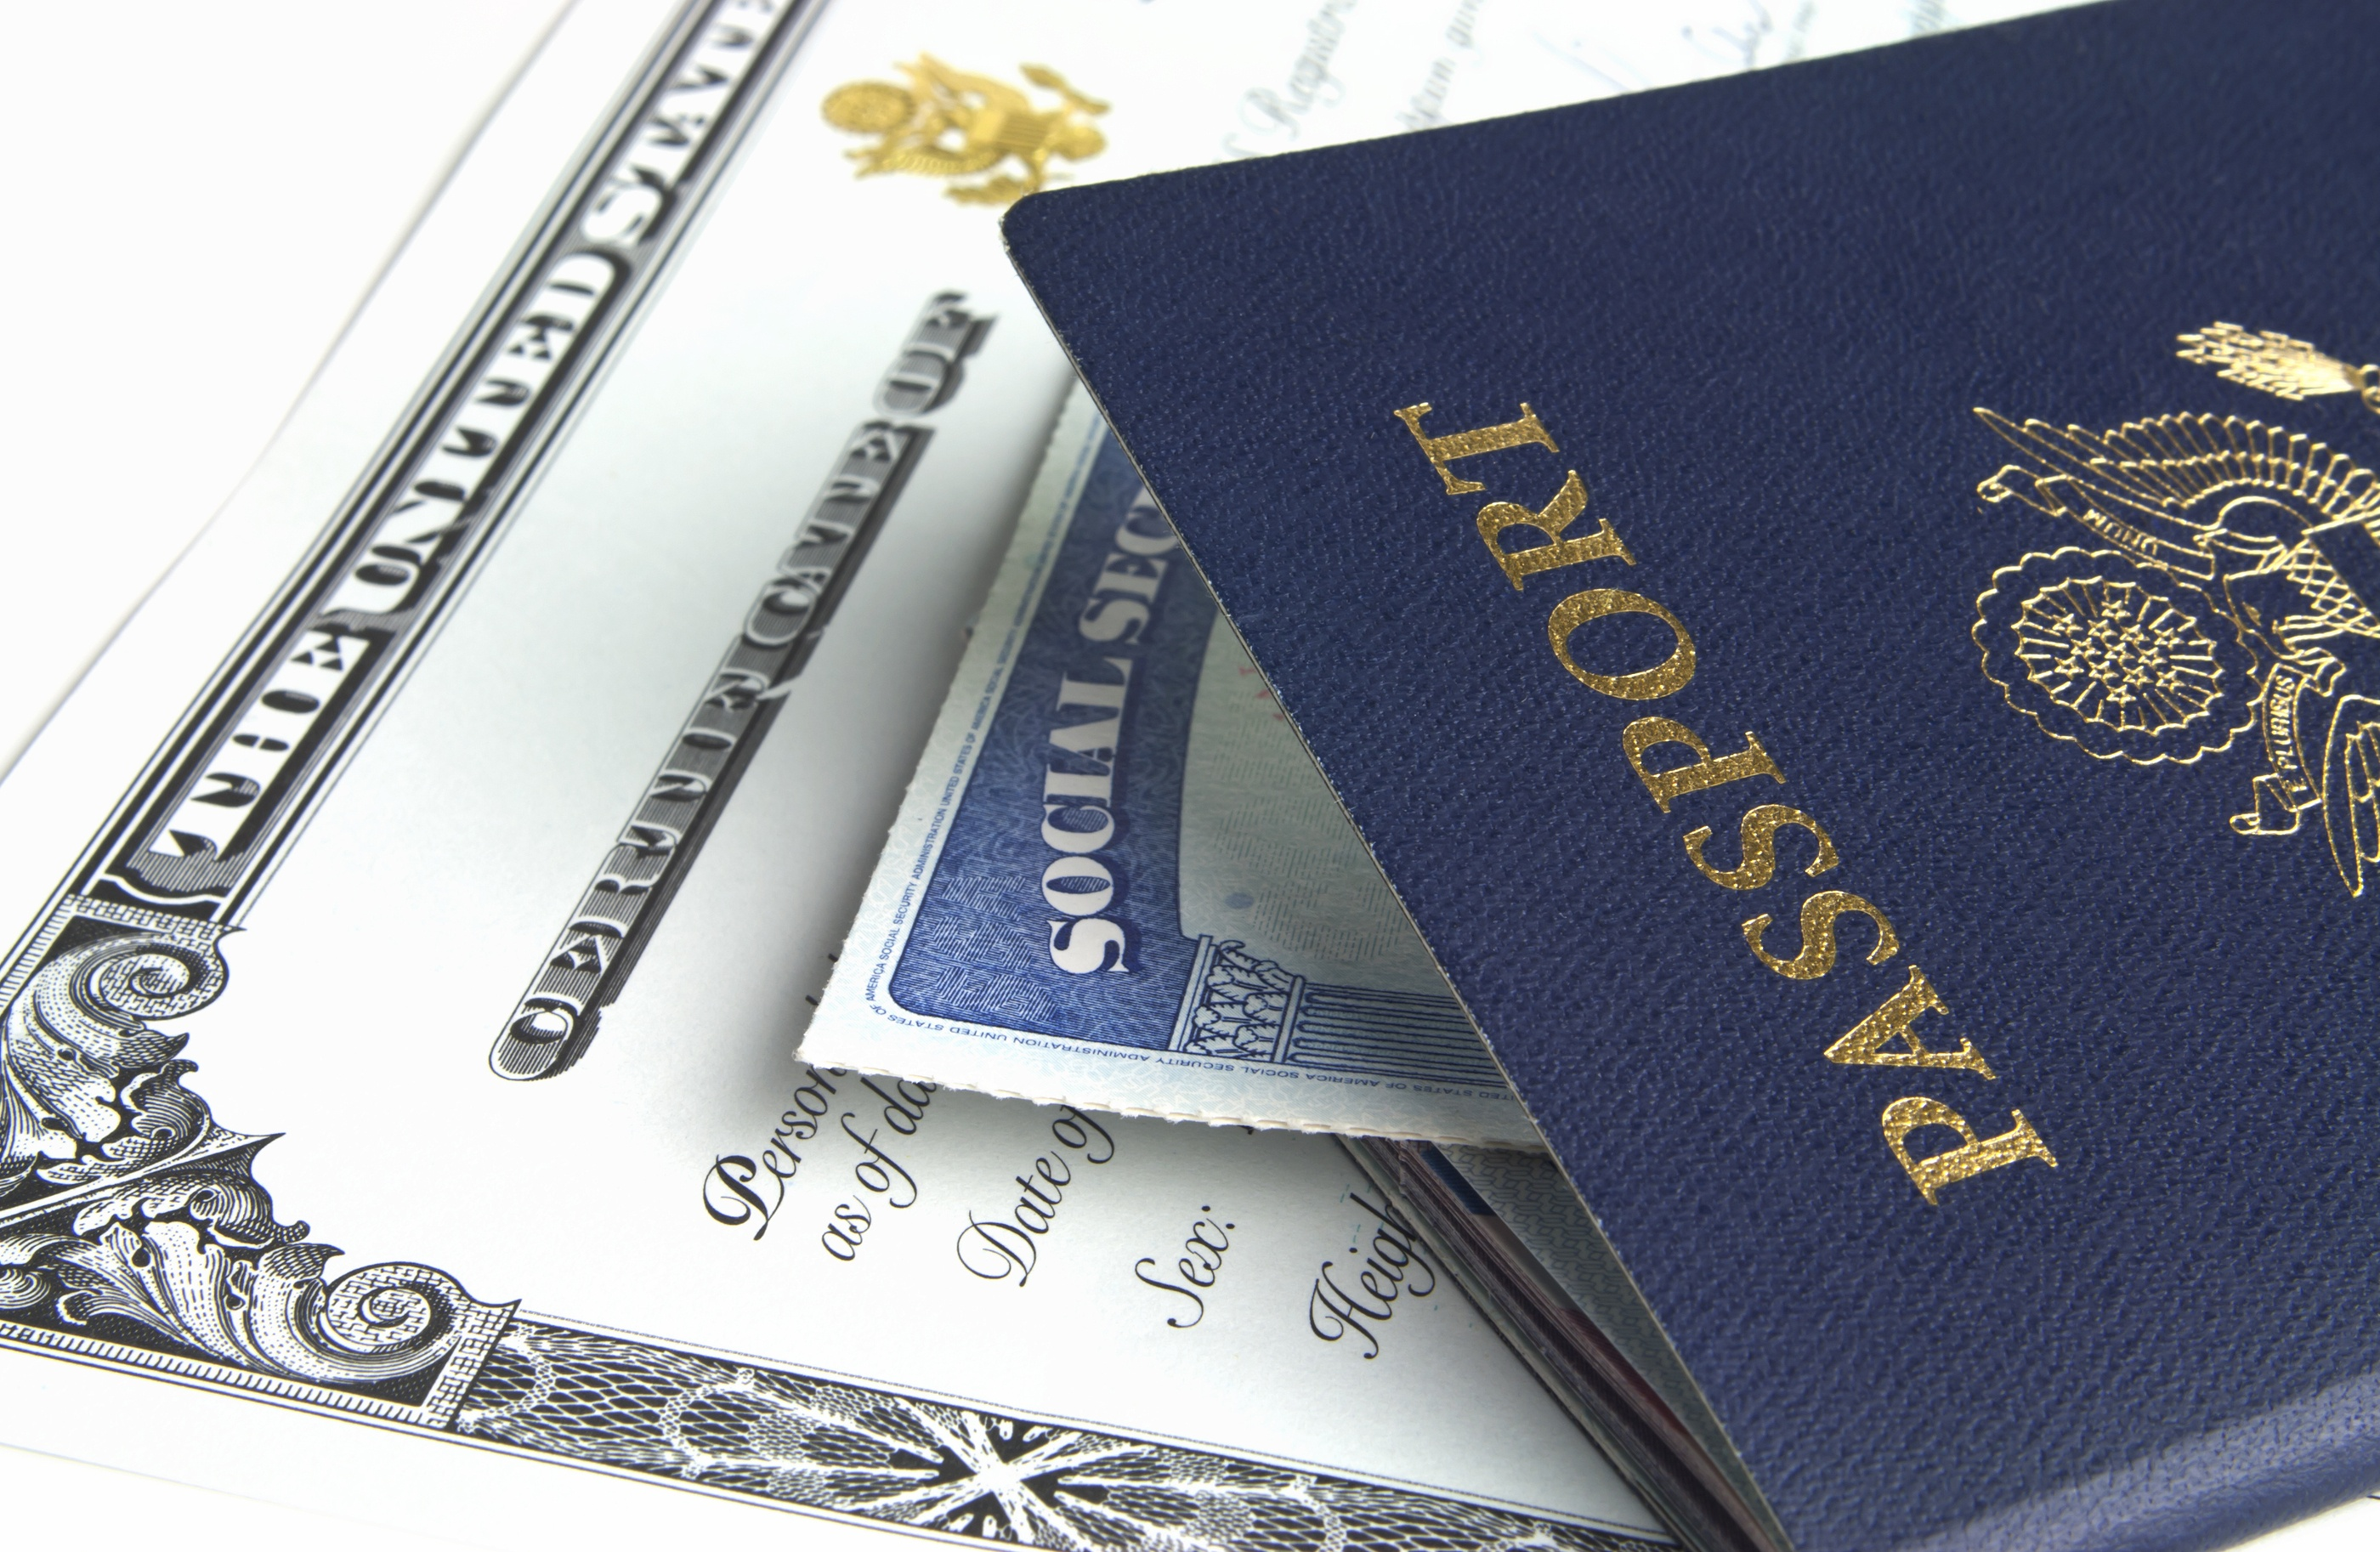 bigstock-Passport-And-Documents-35966011